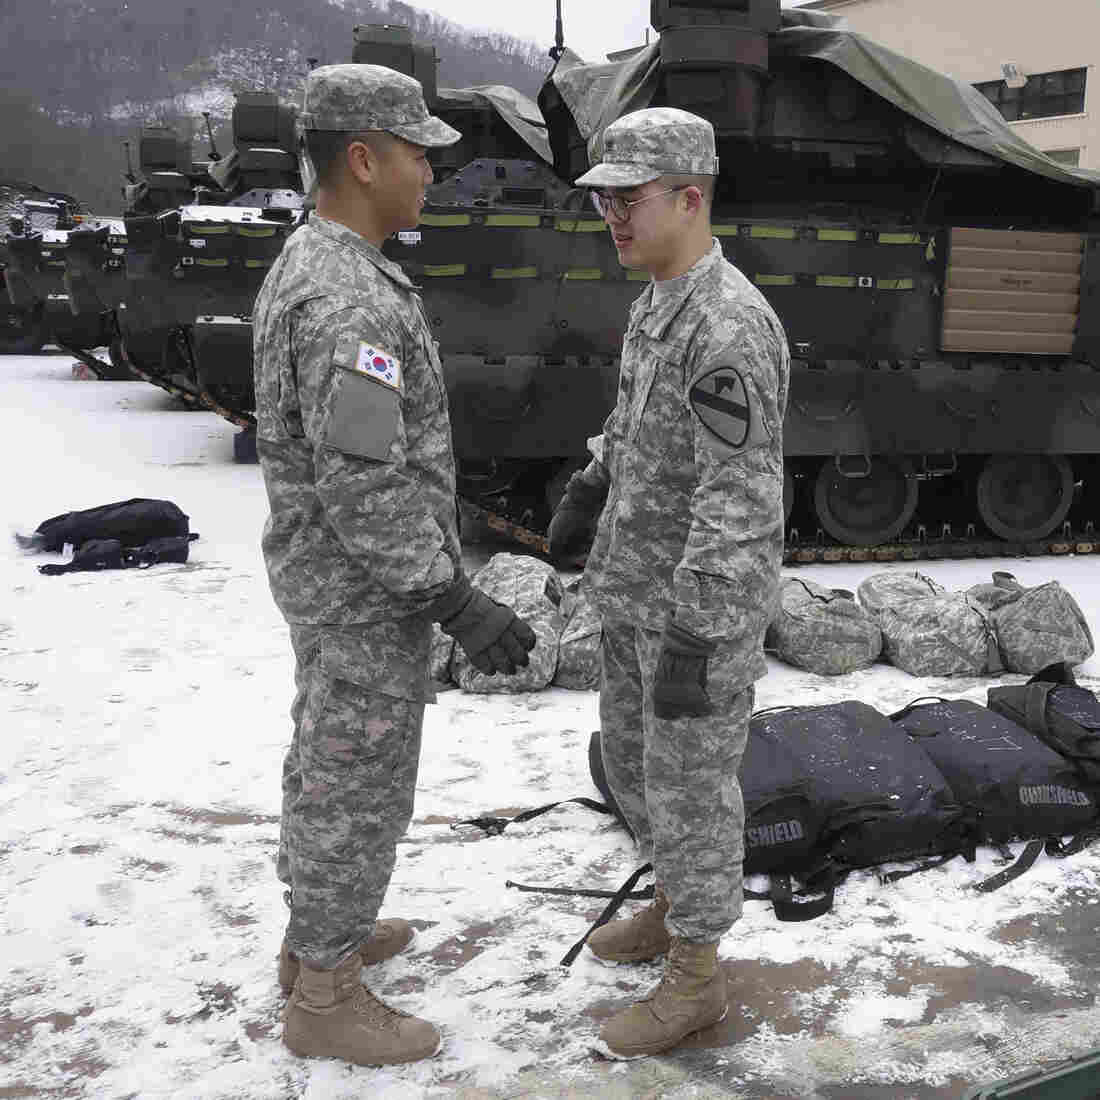 Welcome To Korea: 4,000 U.S. Troops Arrive At A Tense Time